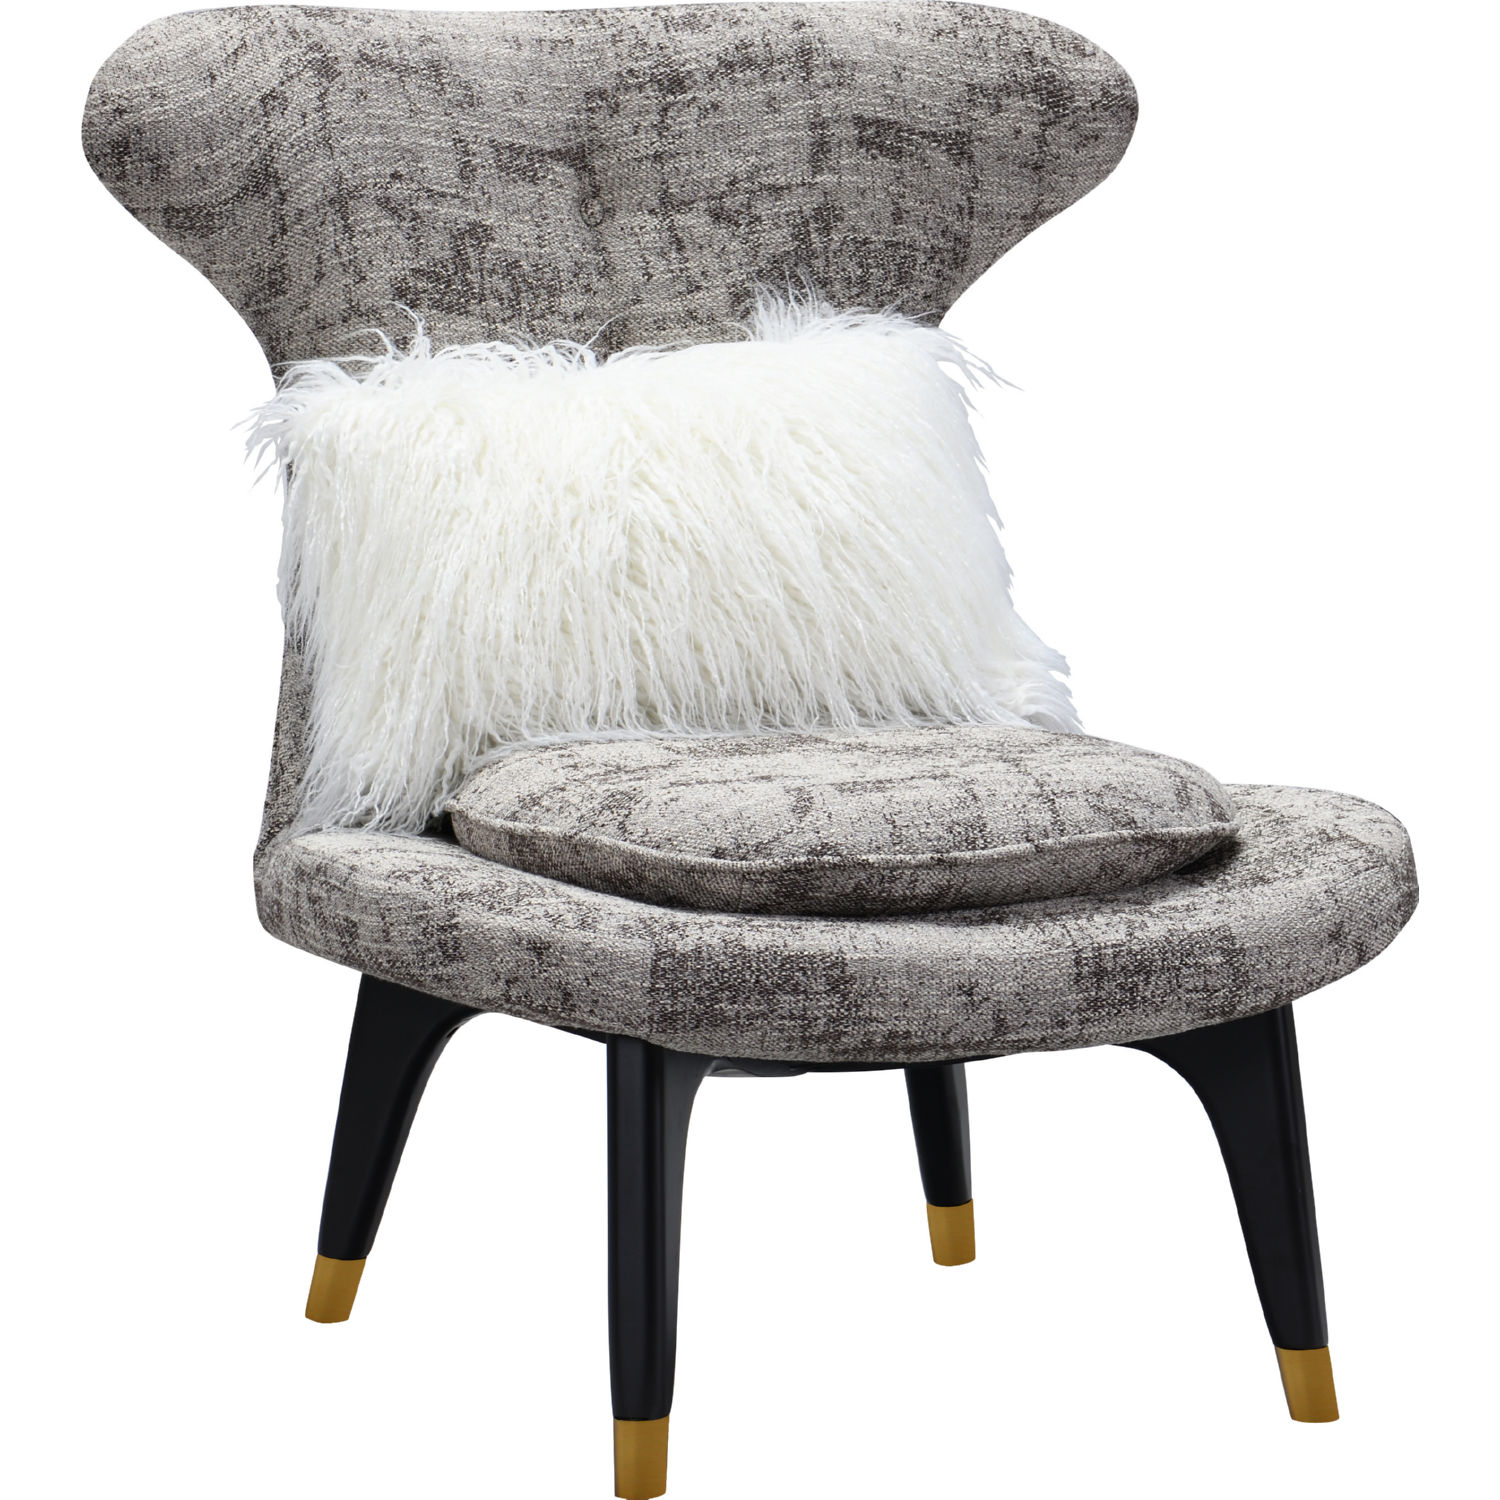 Sensational Chateau Accent Chair In Brown Fabric On Gold Tipped Wood Legs By Chic Home Gmtry Best Dining Table And Chair Ideas Images Gmtryco